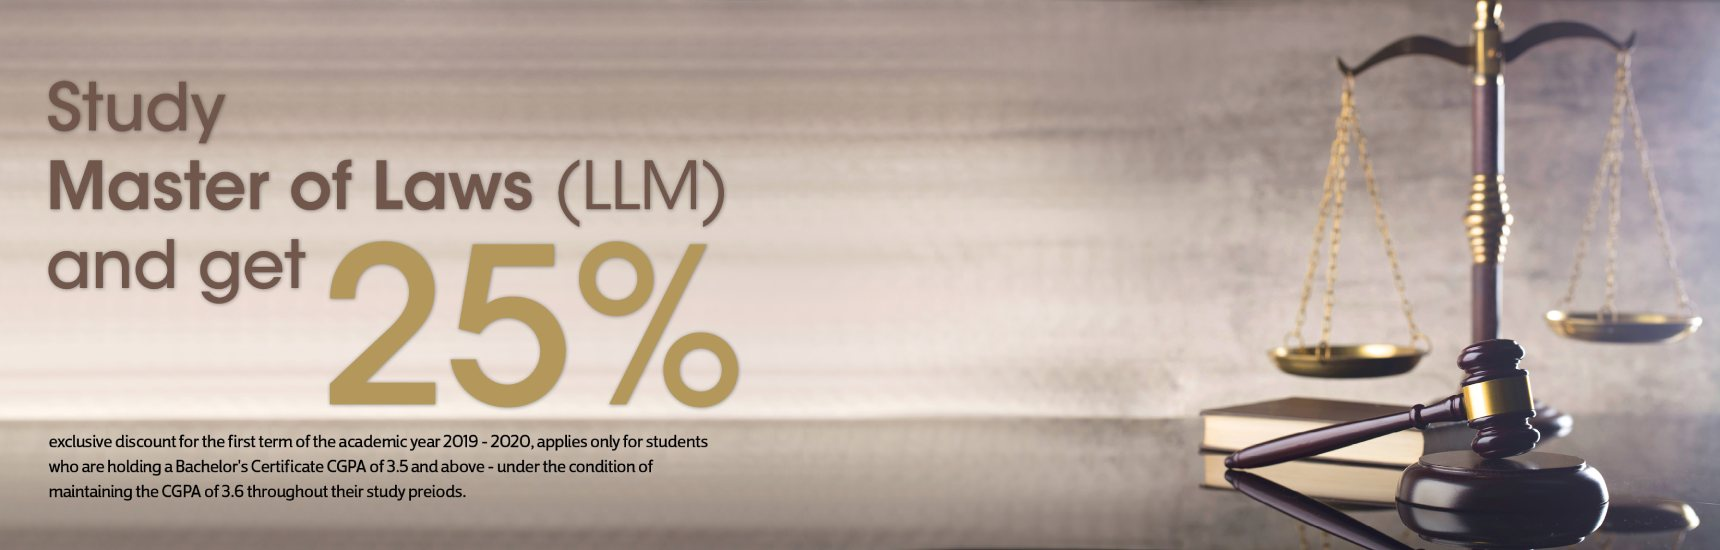 study master of laws(llm) and get 25%